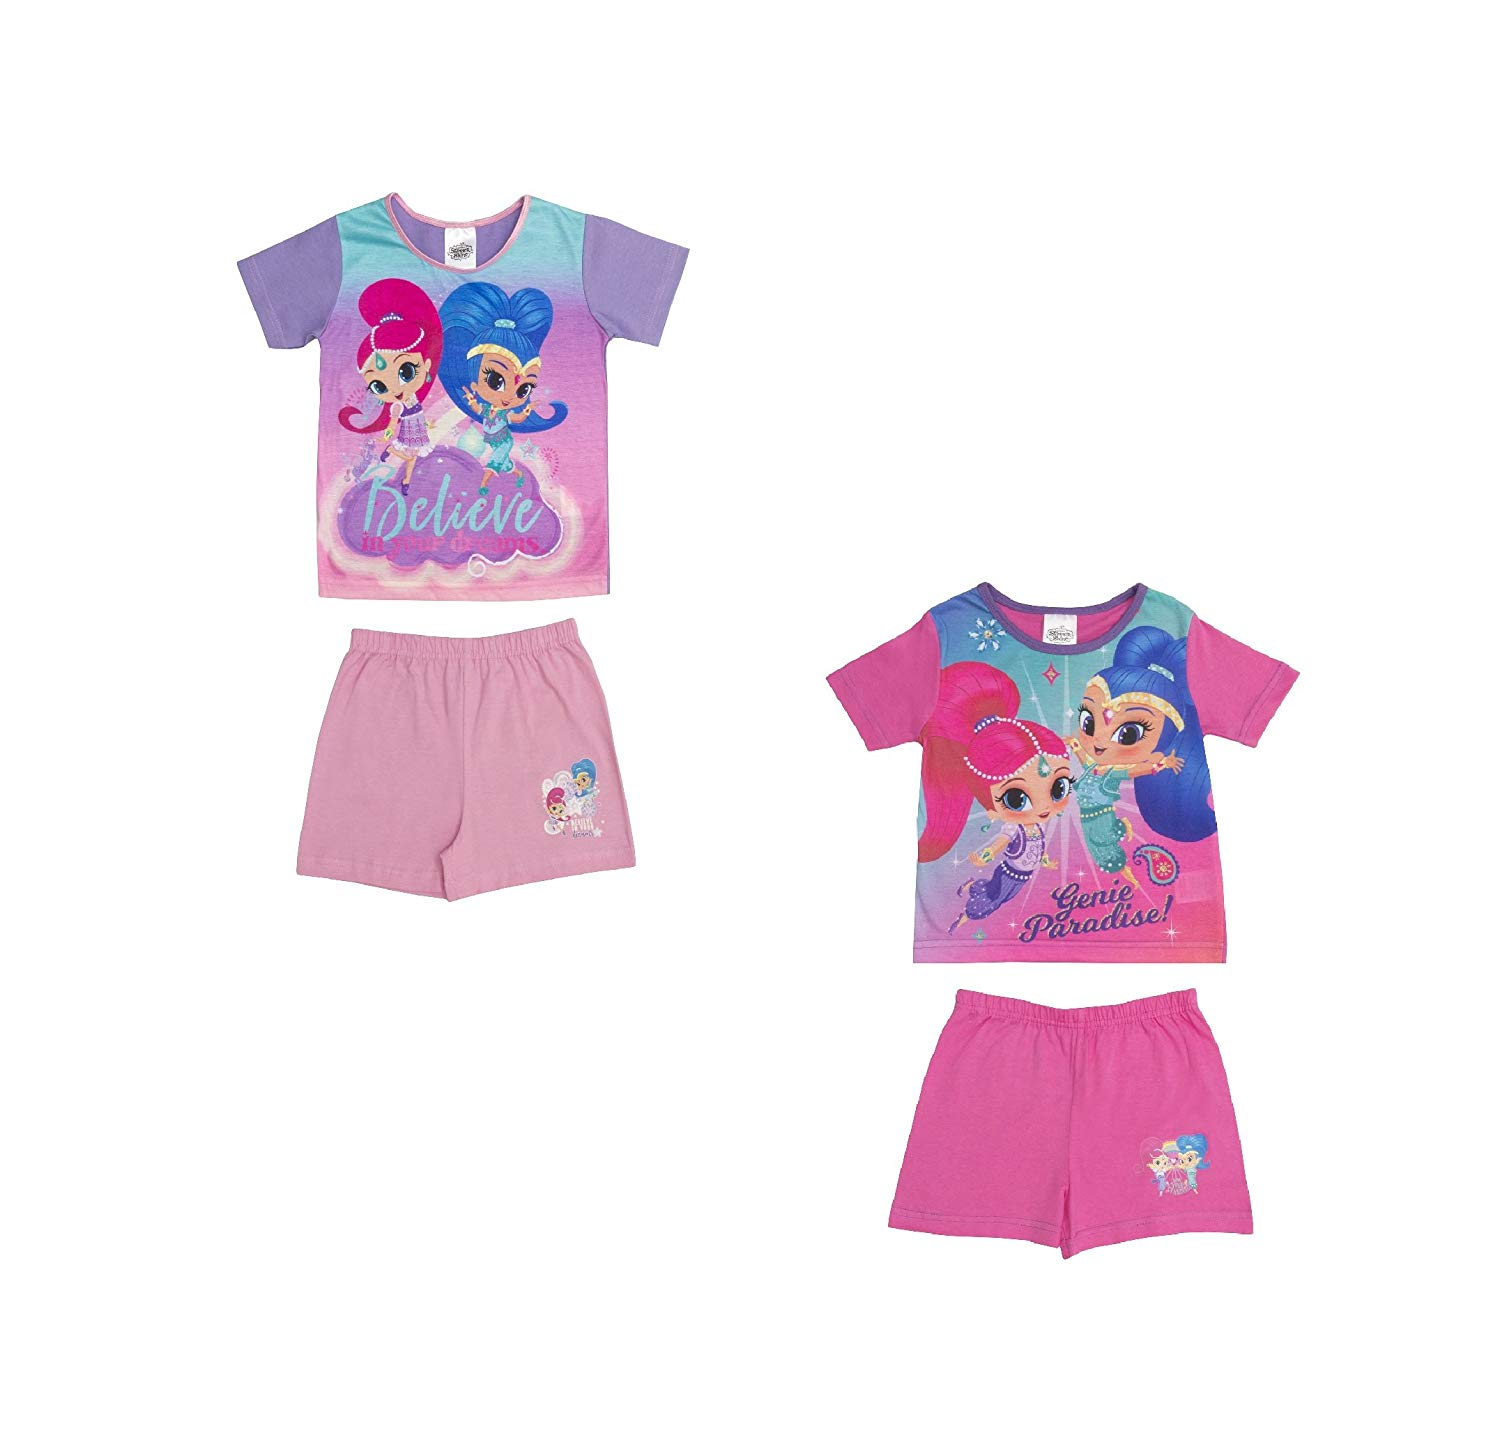 372a682b80283 Get Quotations · Cartoon Character Products 2 Pack Nickleodeon Shimmer &  Shine Girls Pyjamas Shortie Set, 18 Months